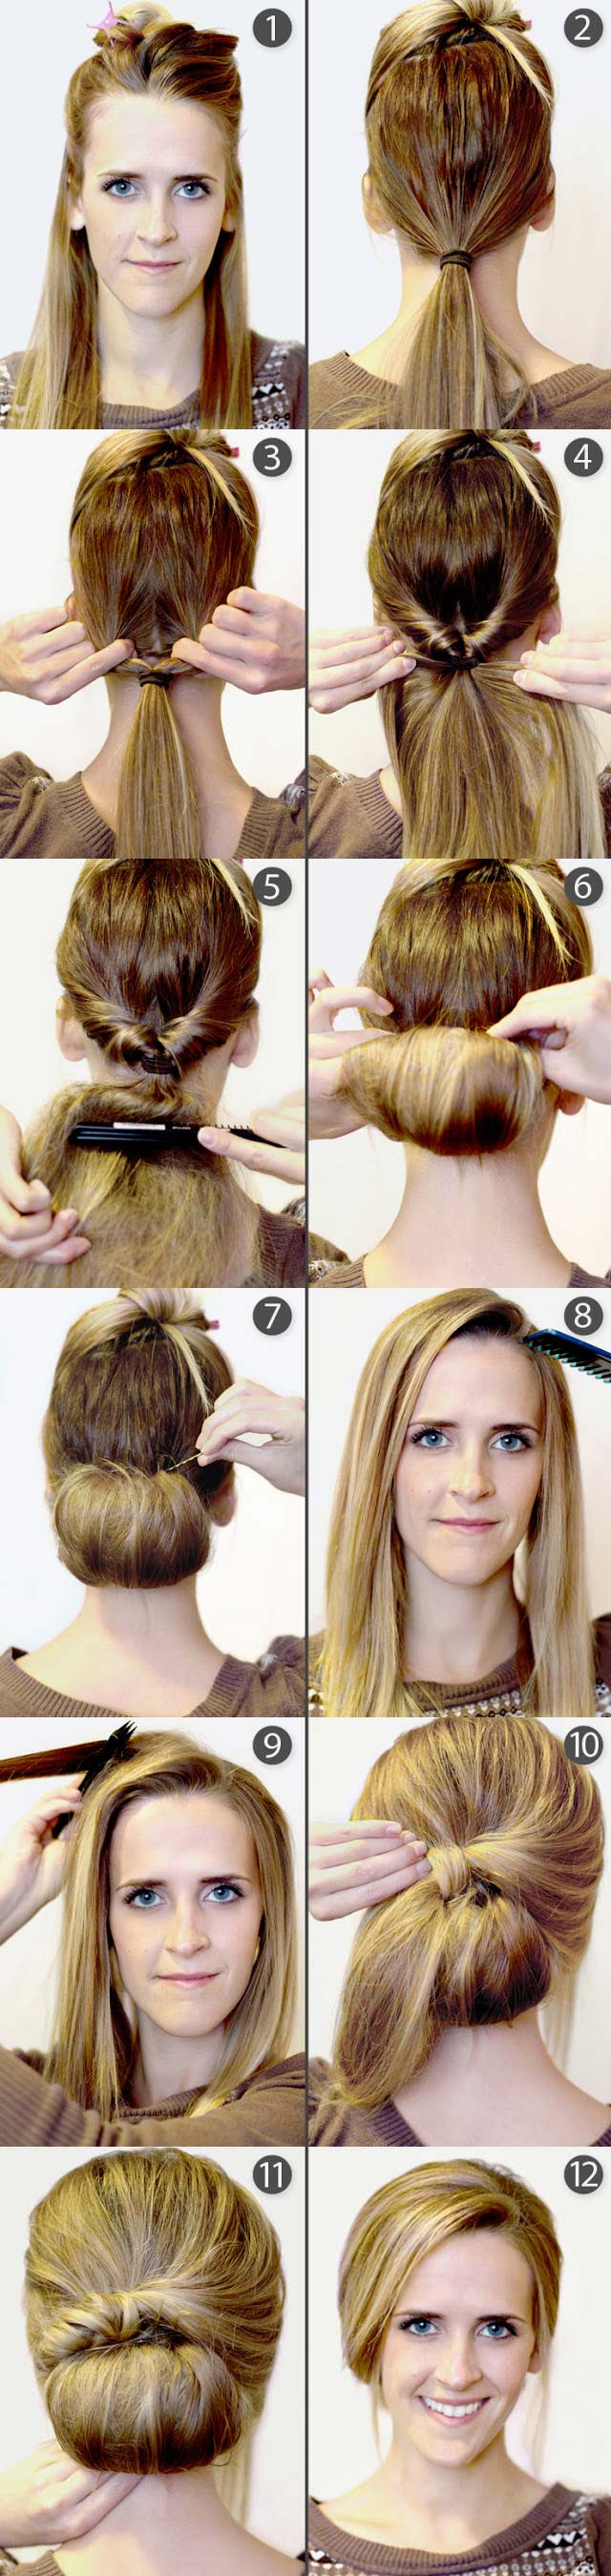 9 Pretty DIY Hairstyles  With Step  by Step  Tutorials